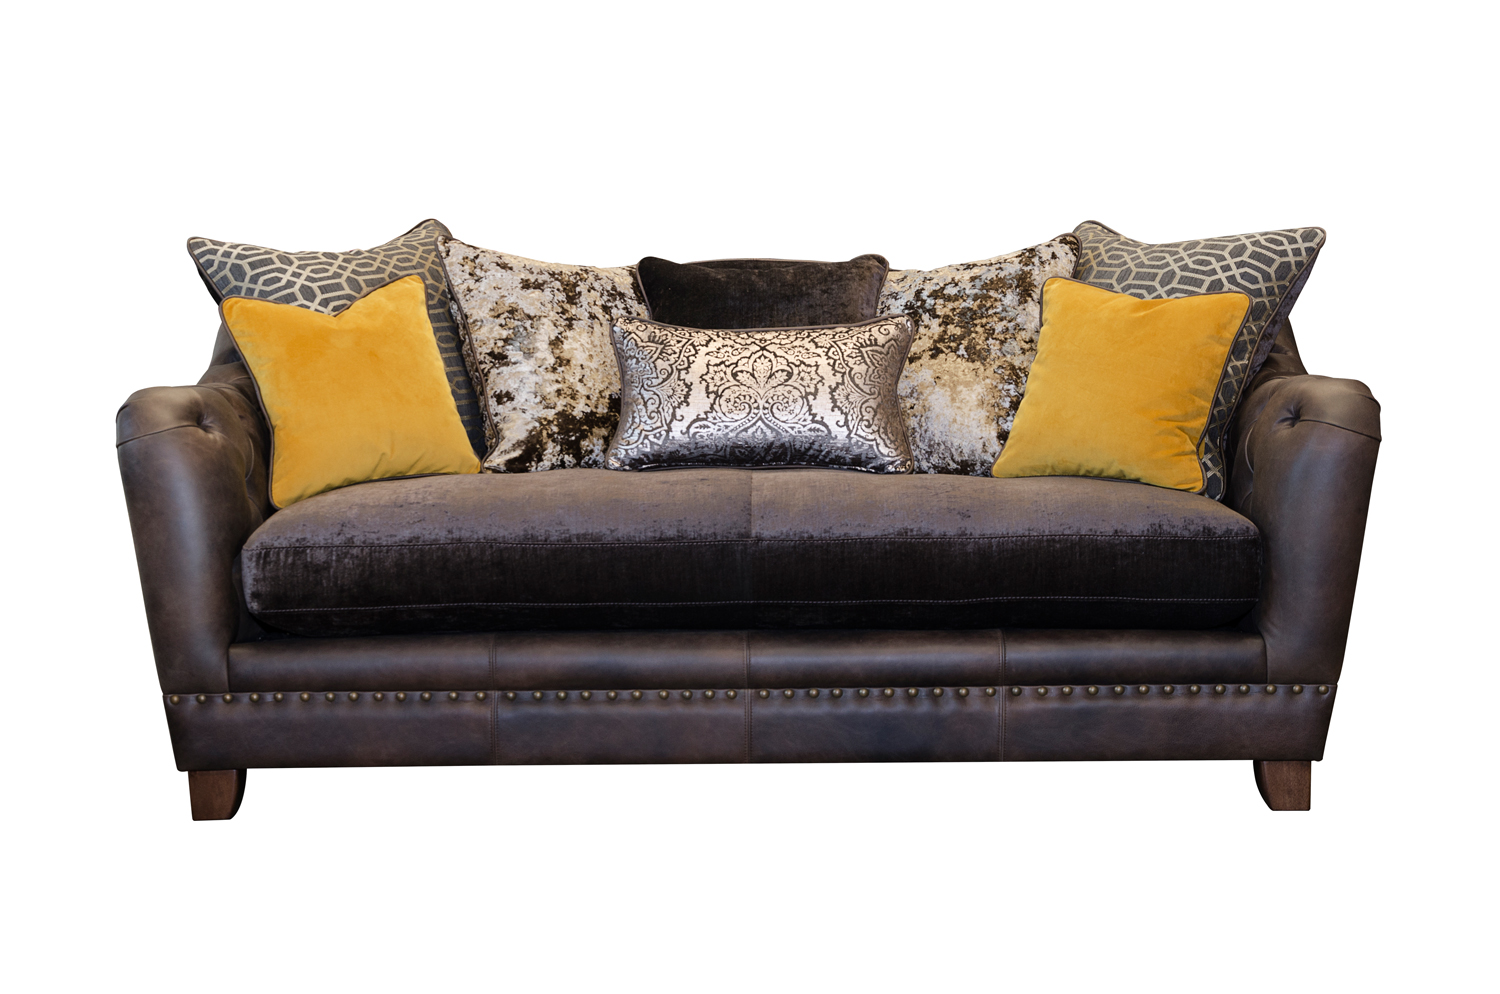 Large Sofas East Large Sofa Alexander And James